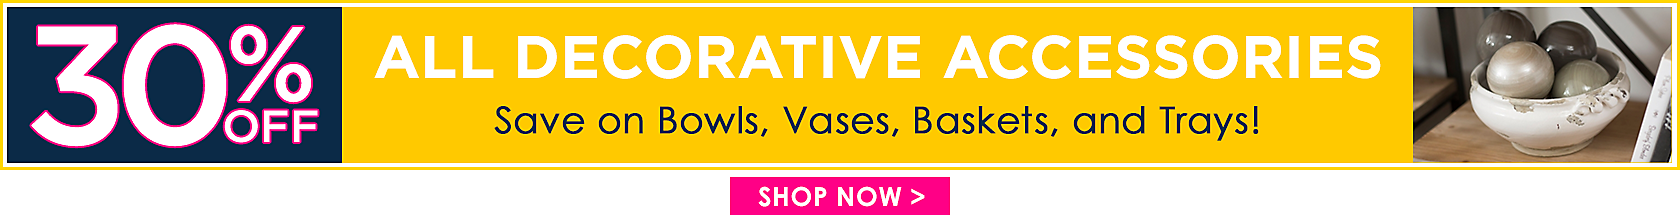 30% off All Decorative Accessories Save on Bowls, Vases, Baskets, and Trays! - Shop Now